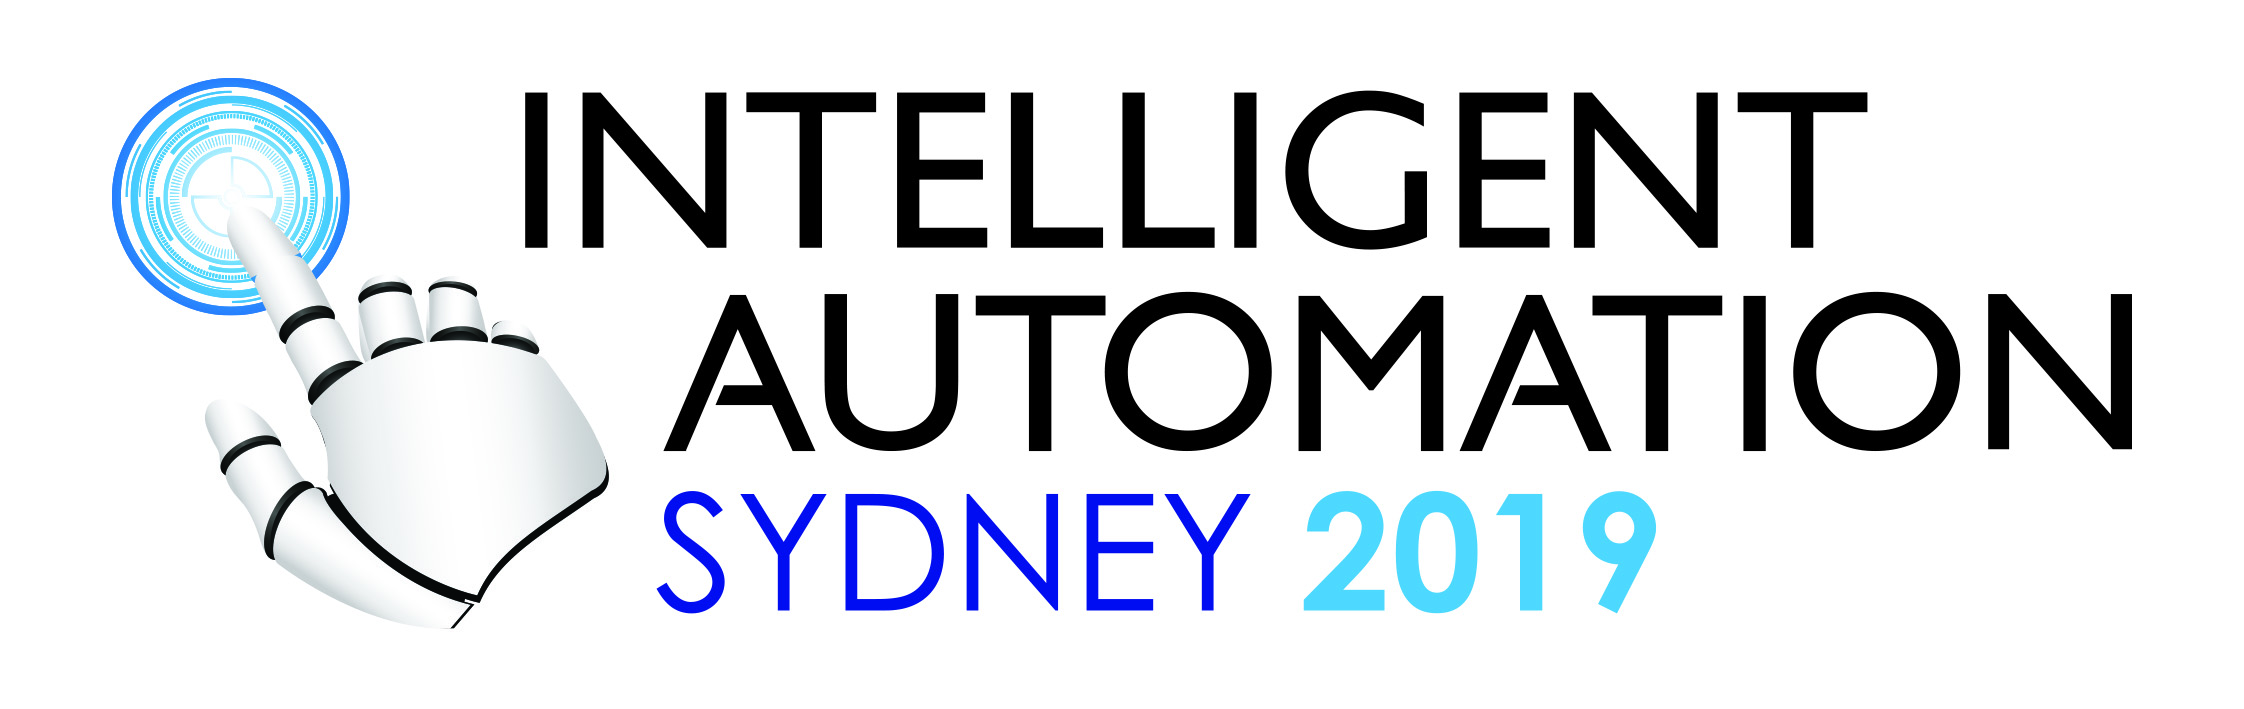 Intelligent Automation 2019: View Event Guide